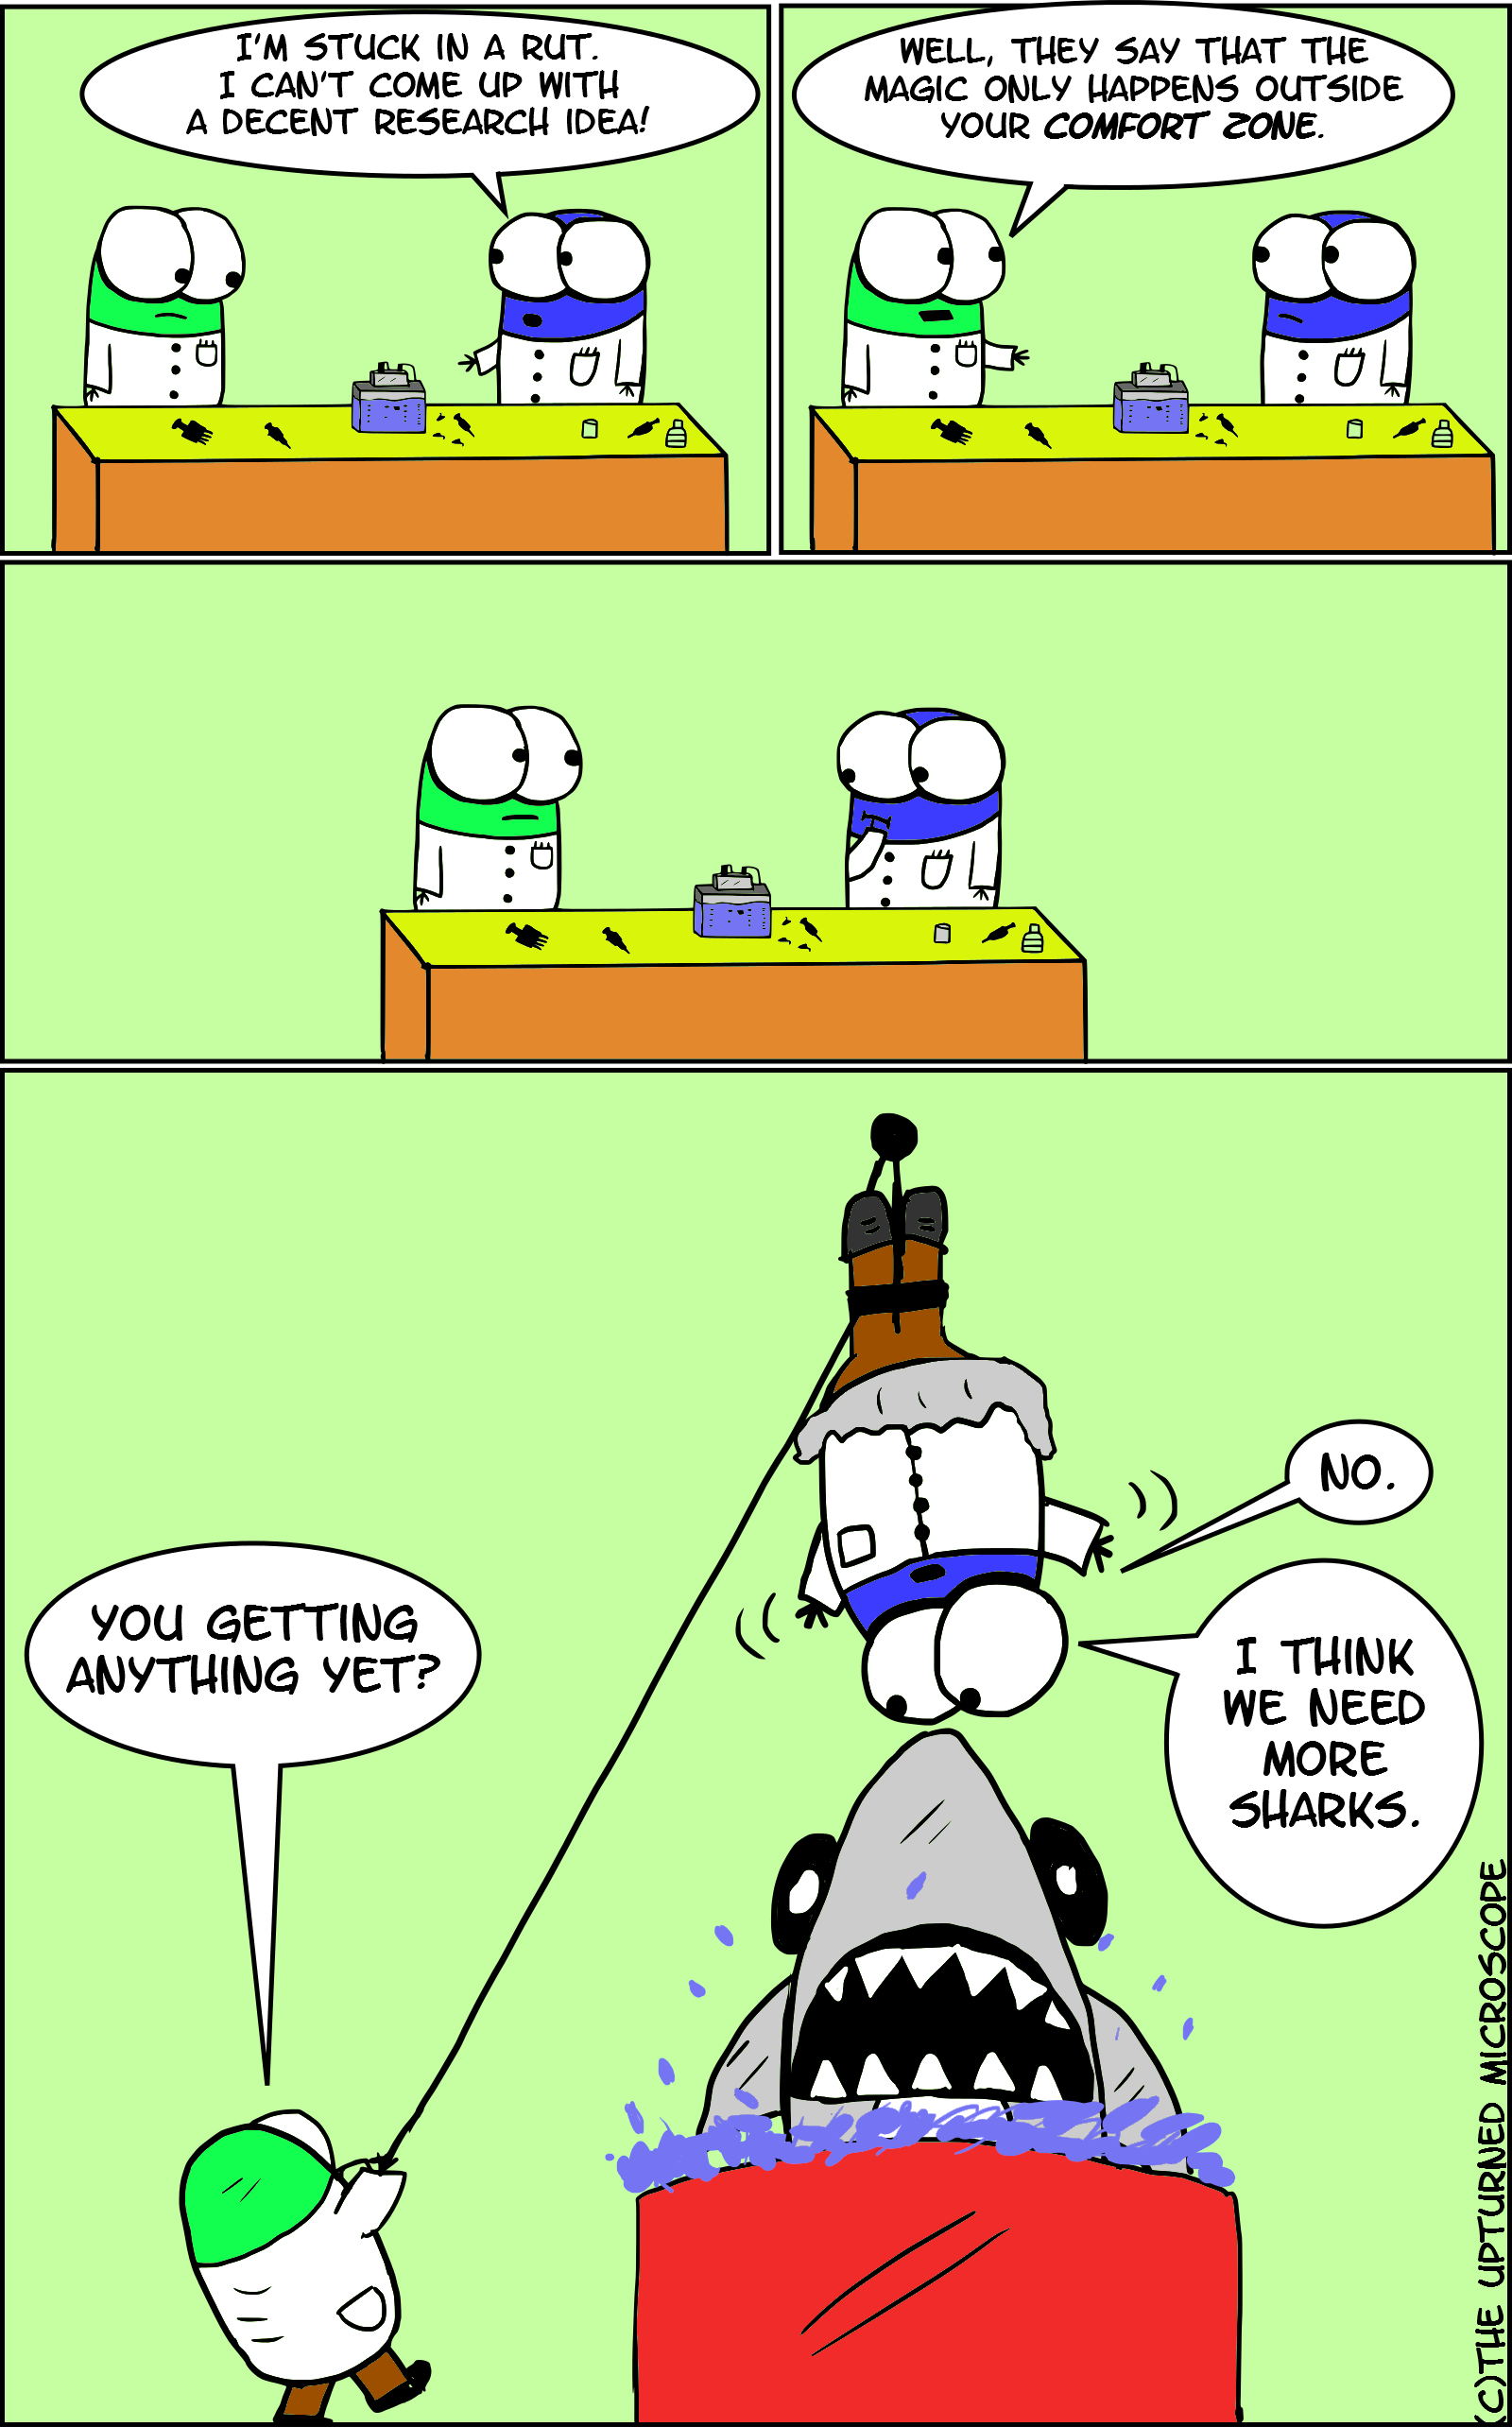 Humour the upturned microscope page 2 for Comfort zone